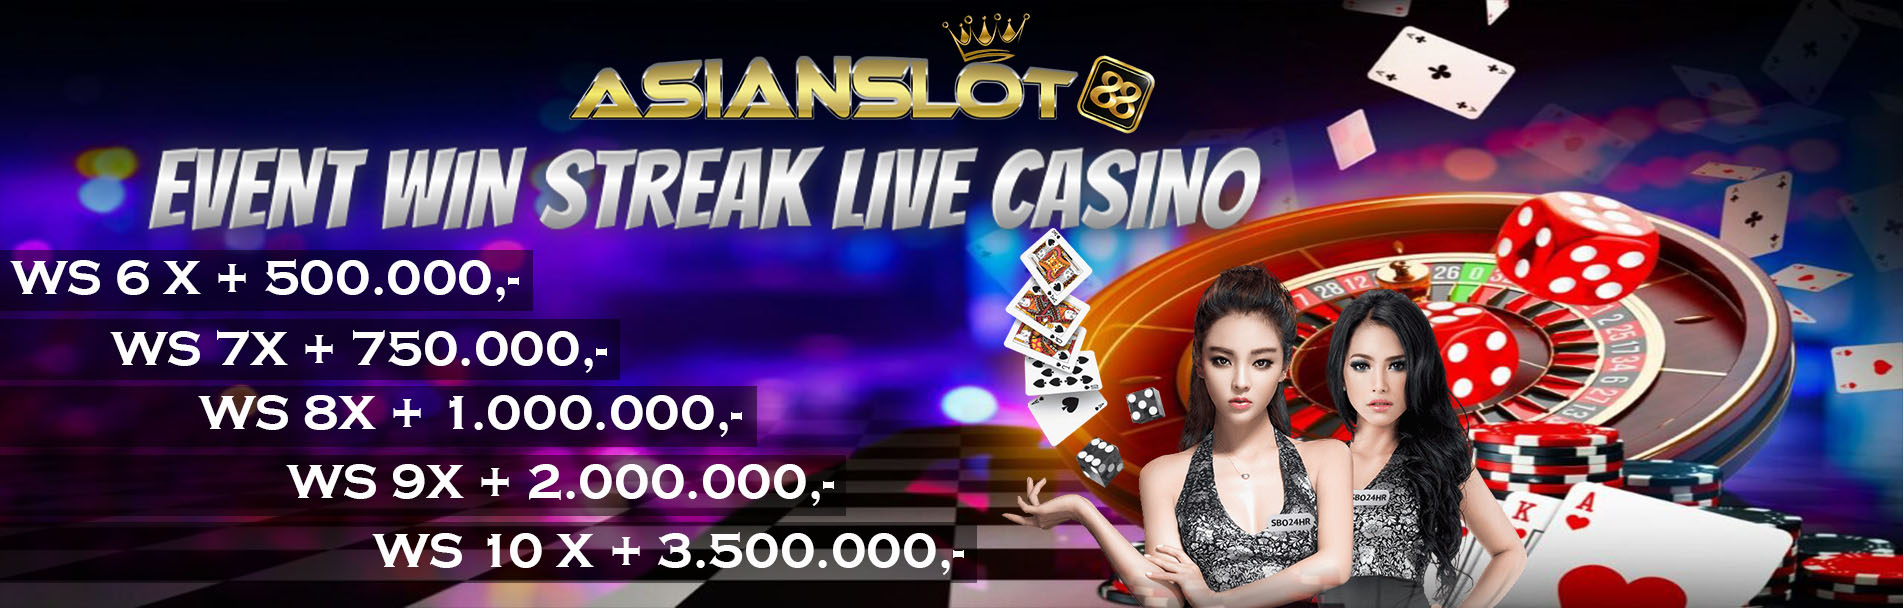 EVENT WS LIVE CASINO BACCARAT